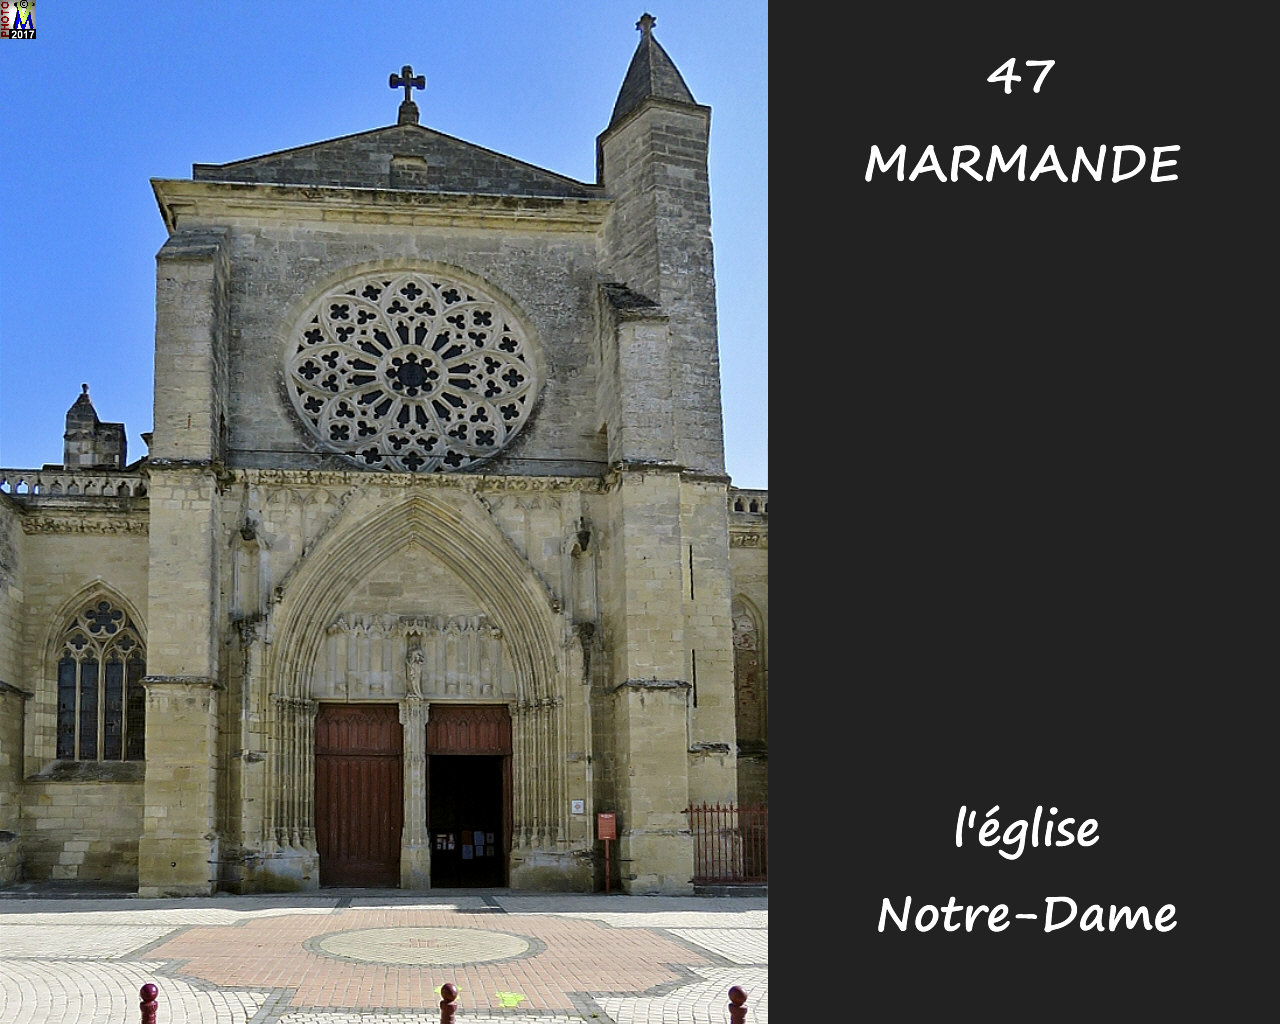 47MARMANDE_eglise_1000.JPG